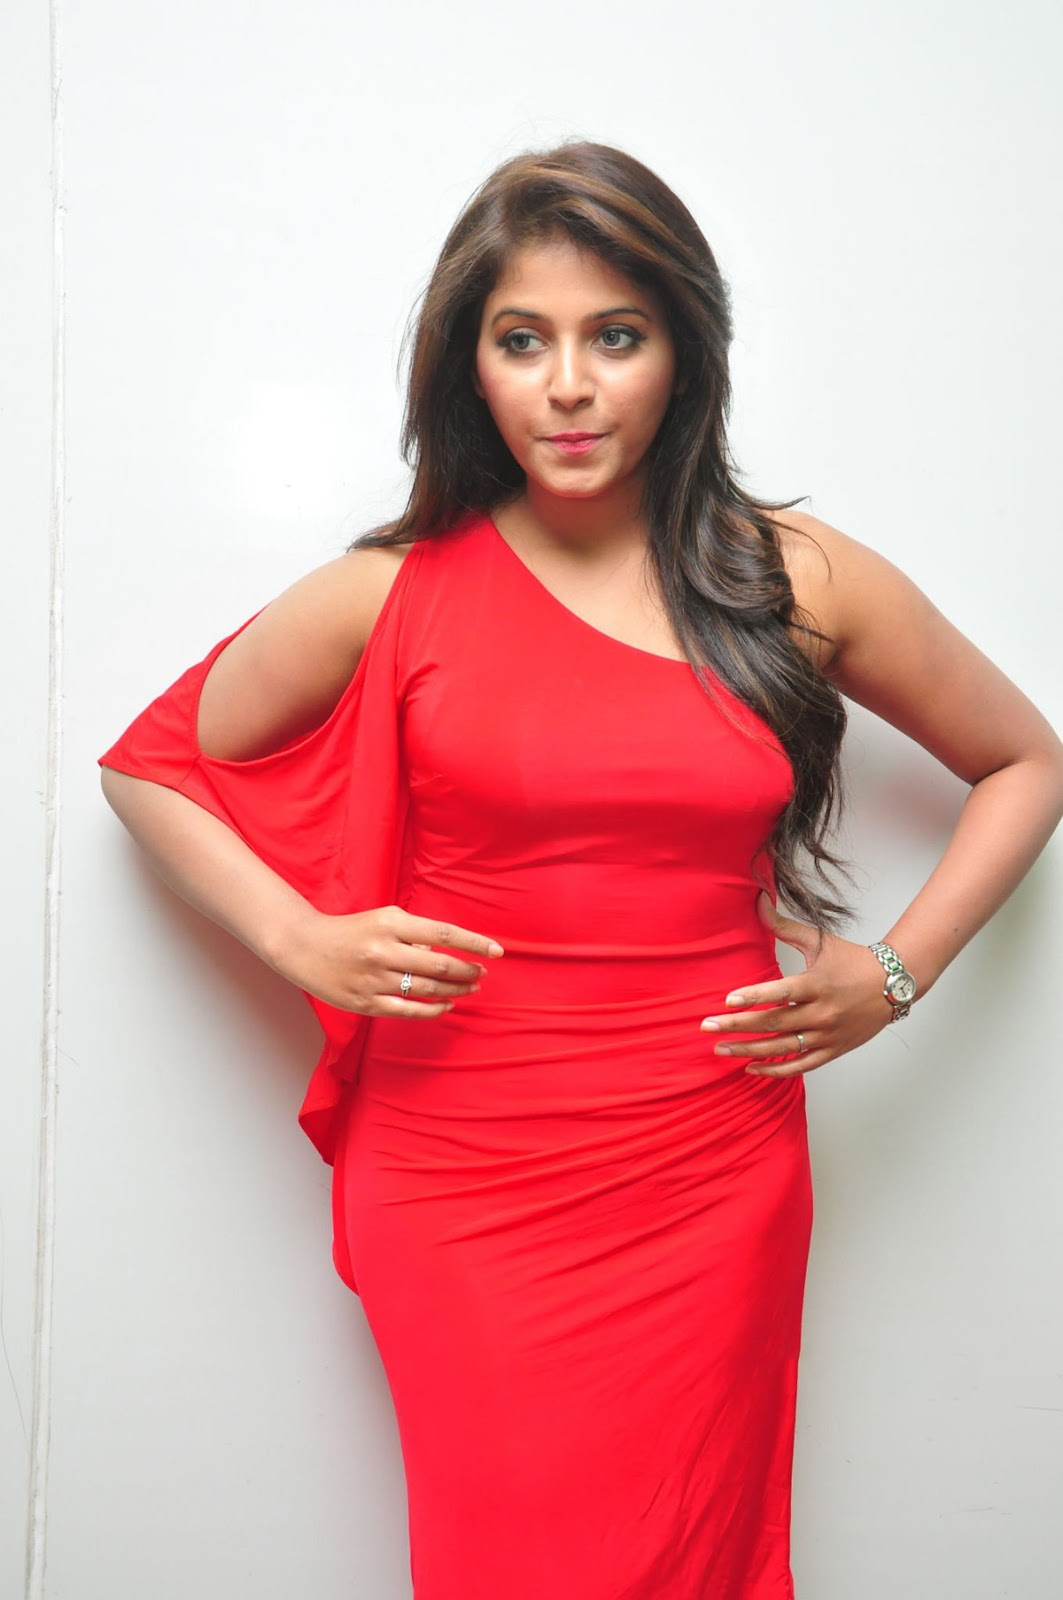 Beautiful Razole Telugu Girl Anjali Stills In Red Dress